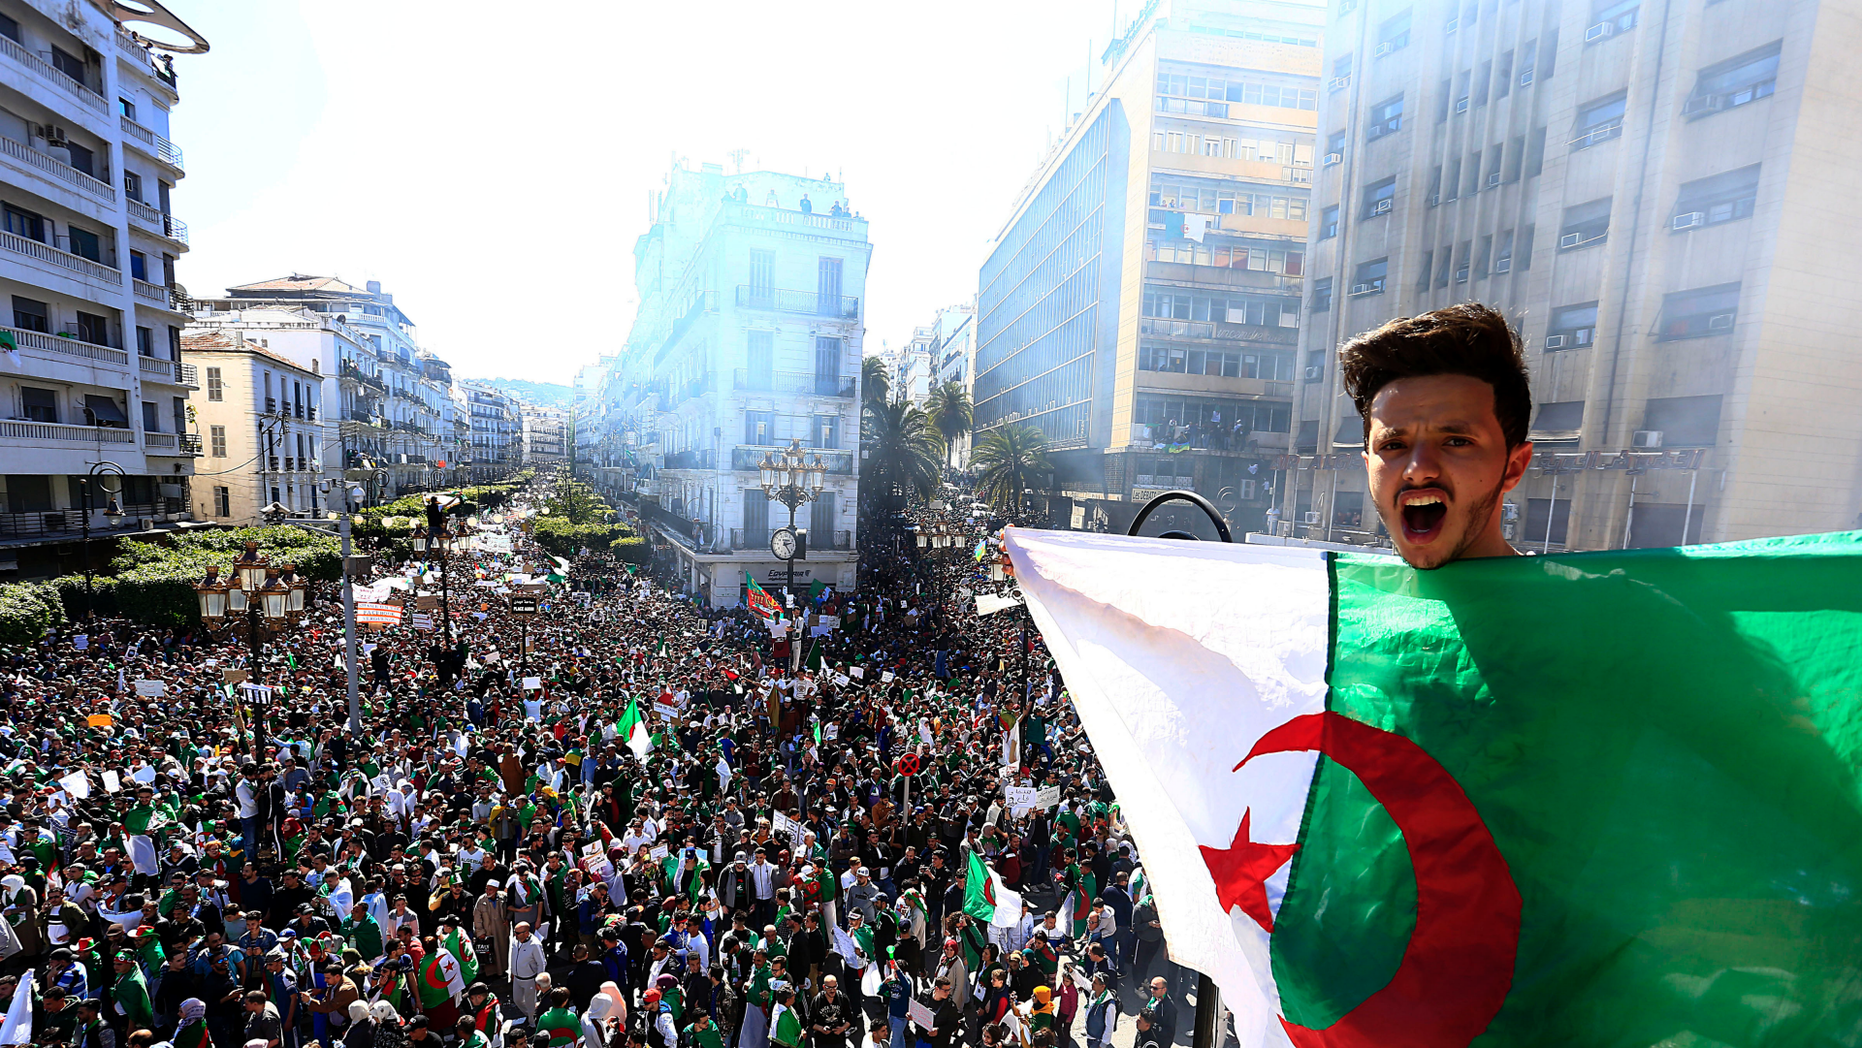 Algerian shouts as he holds the national flag during a protest in Algiers, Algeria, Friday, March 15. Tens of thousands of people gathered Friday in Algeria's capital and other cities amid heavy security for what could be decisive protests against longtime leader Abdelaziz Bouteflika. (AP Photo/Toufik Doudou)